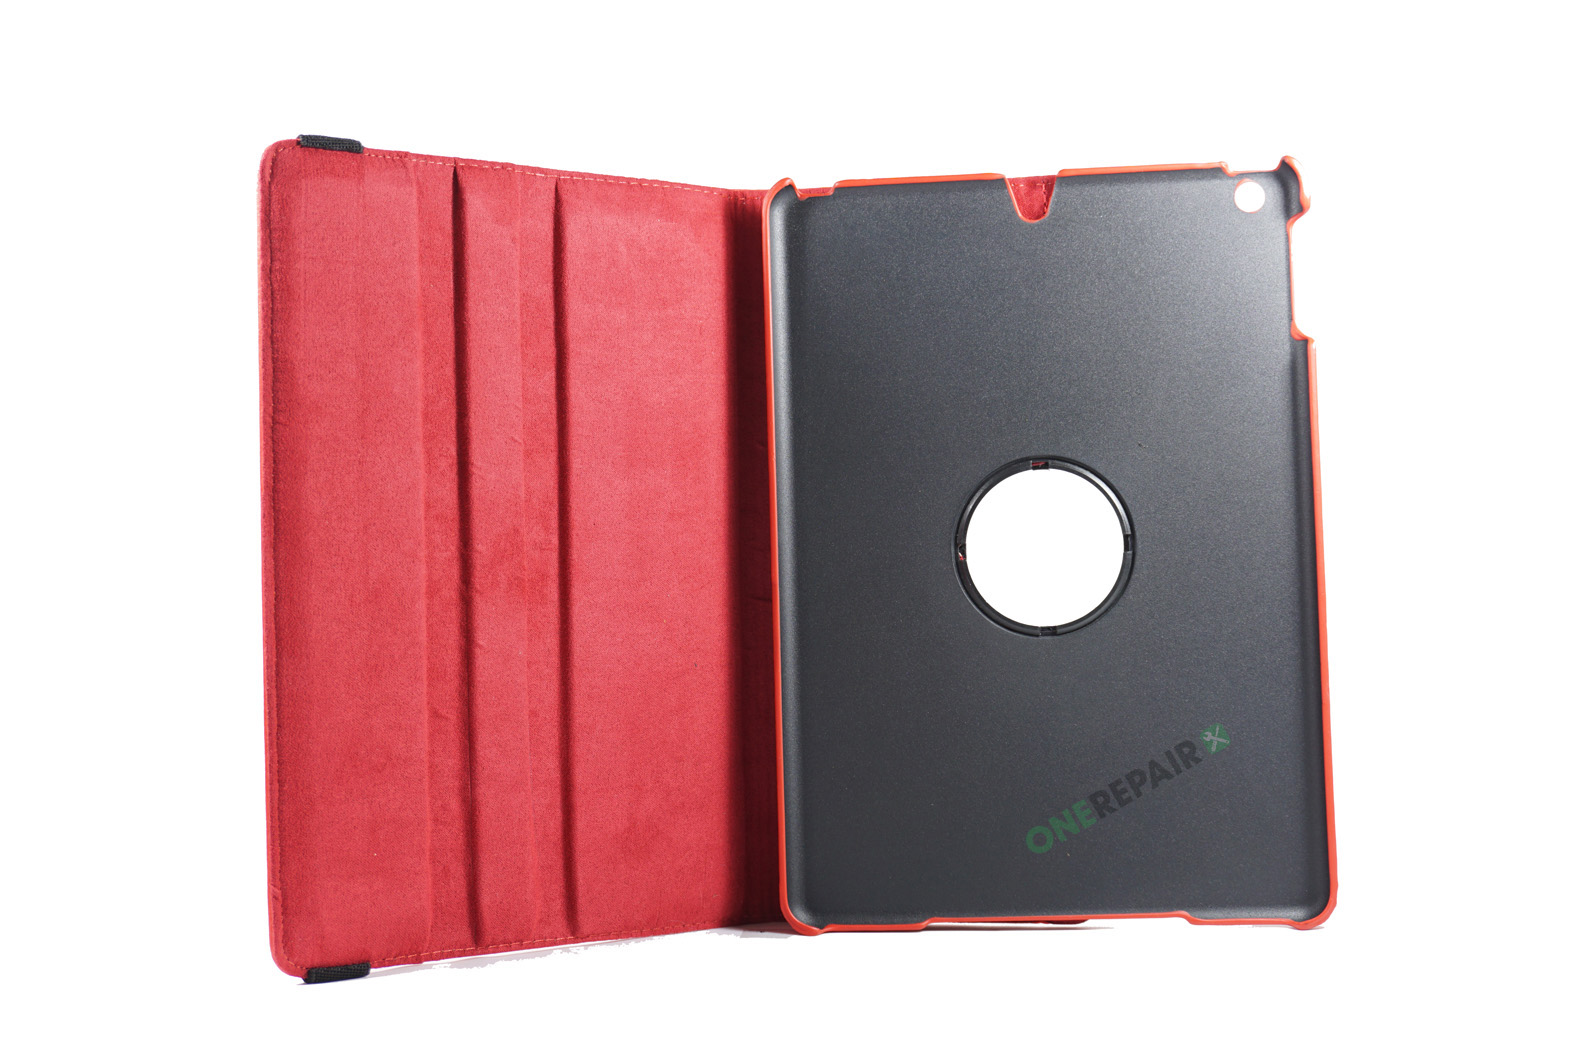 351053_iPad_Air2_2_A1566_A1567_Flipcover_Cover_Roed_OneRepair_00003